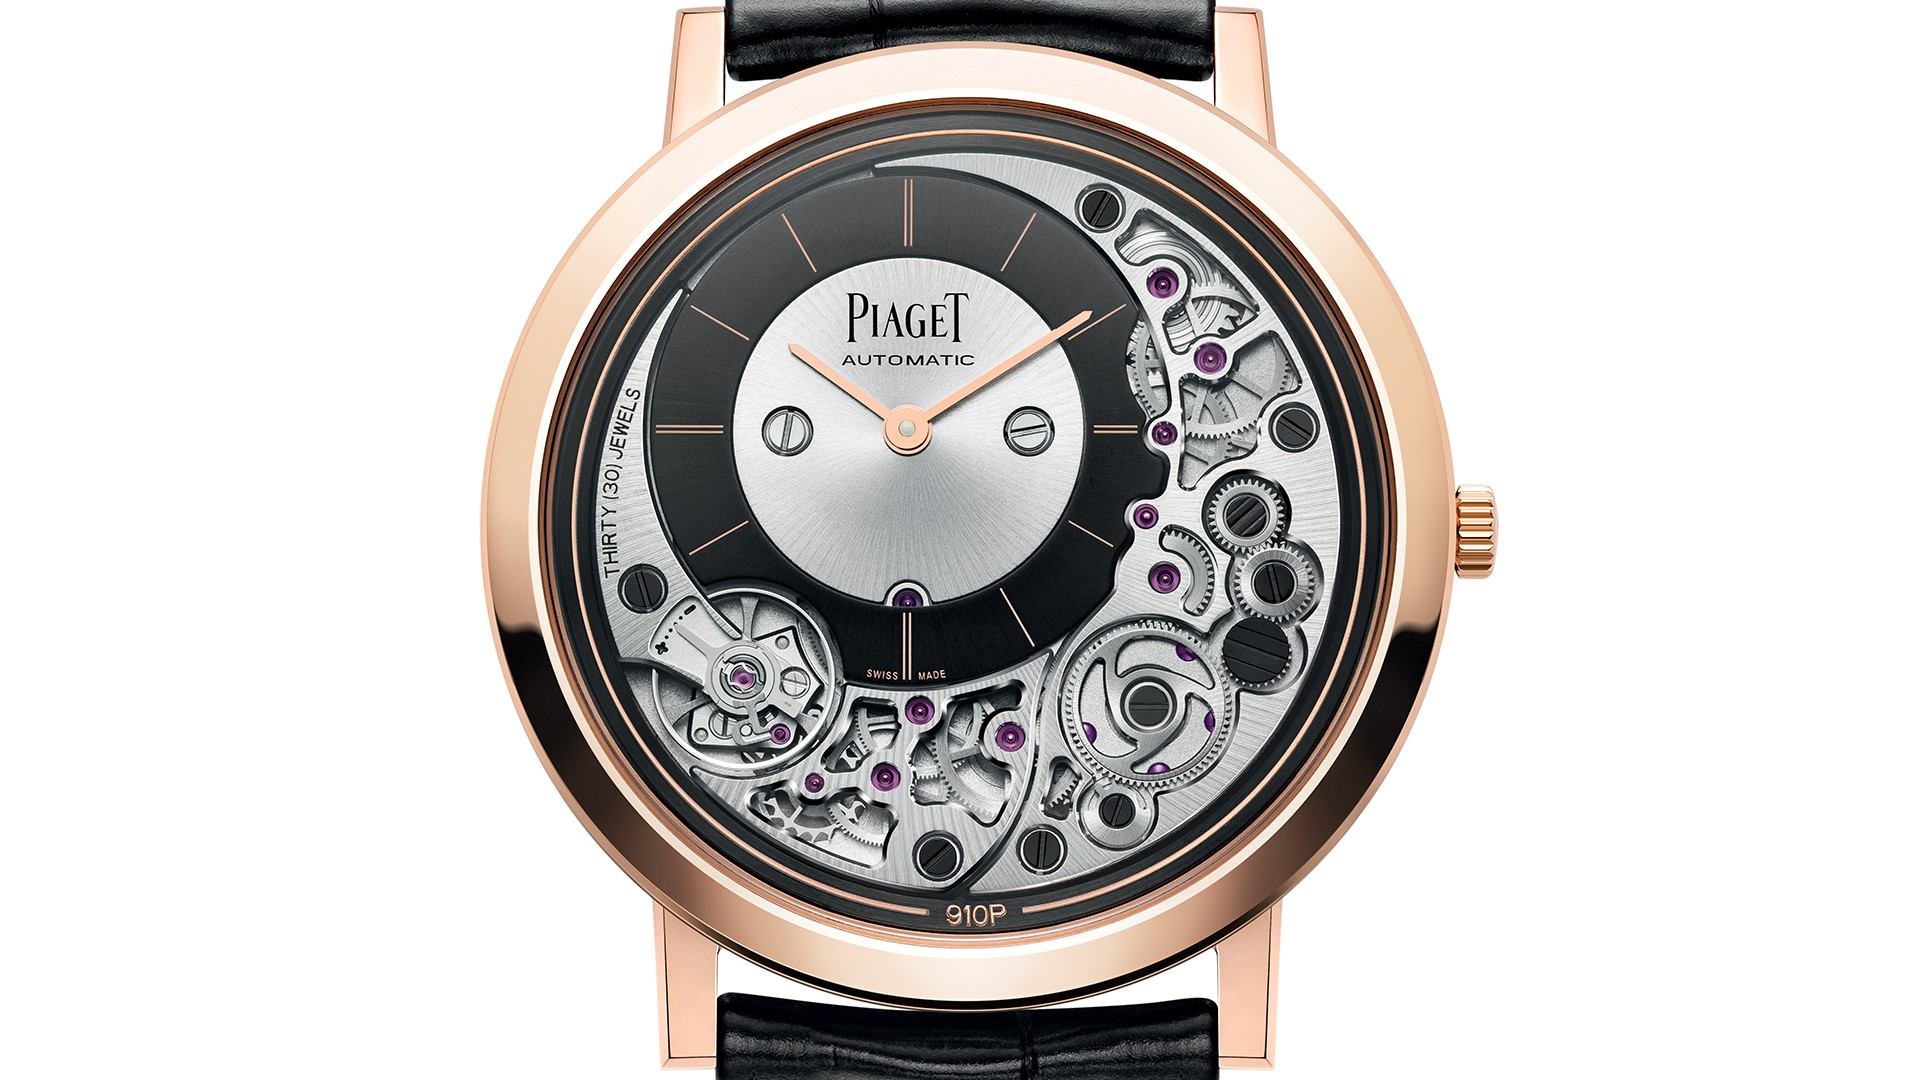 Piaget Altiplano Ultimate 910P watch